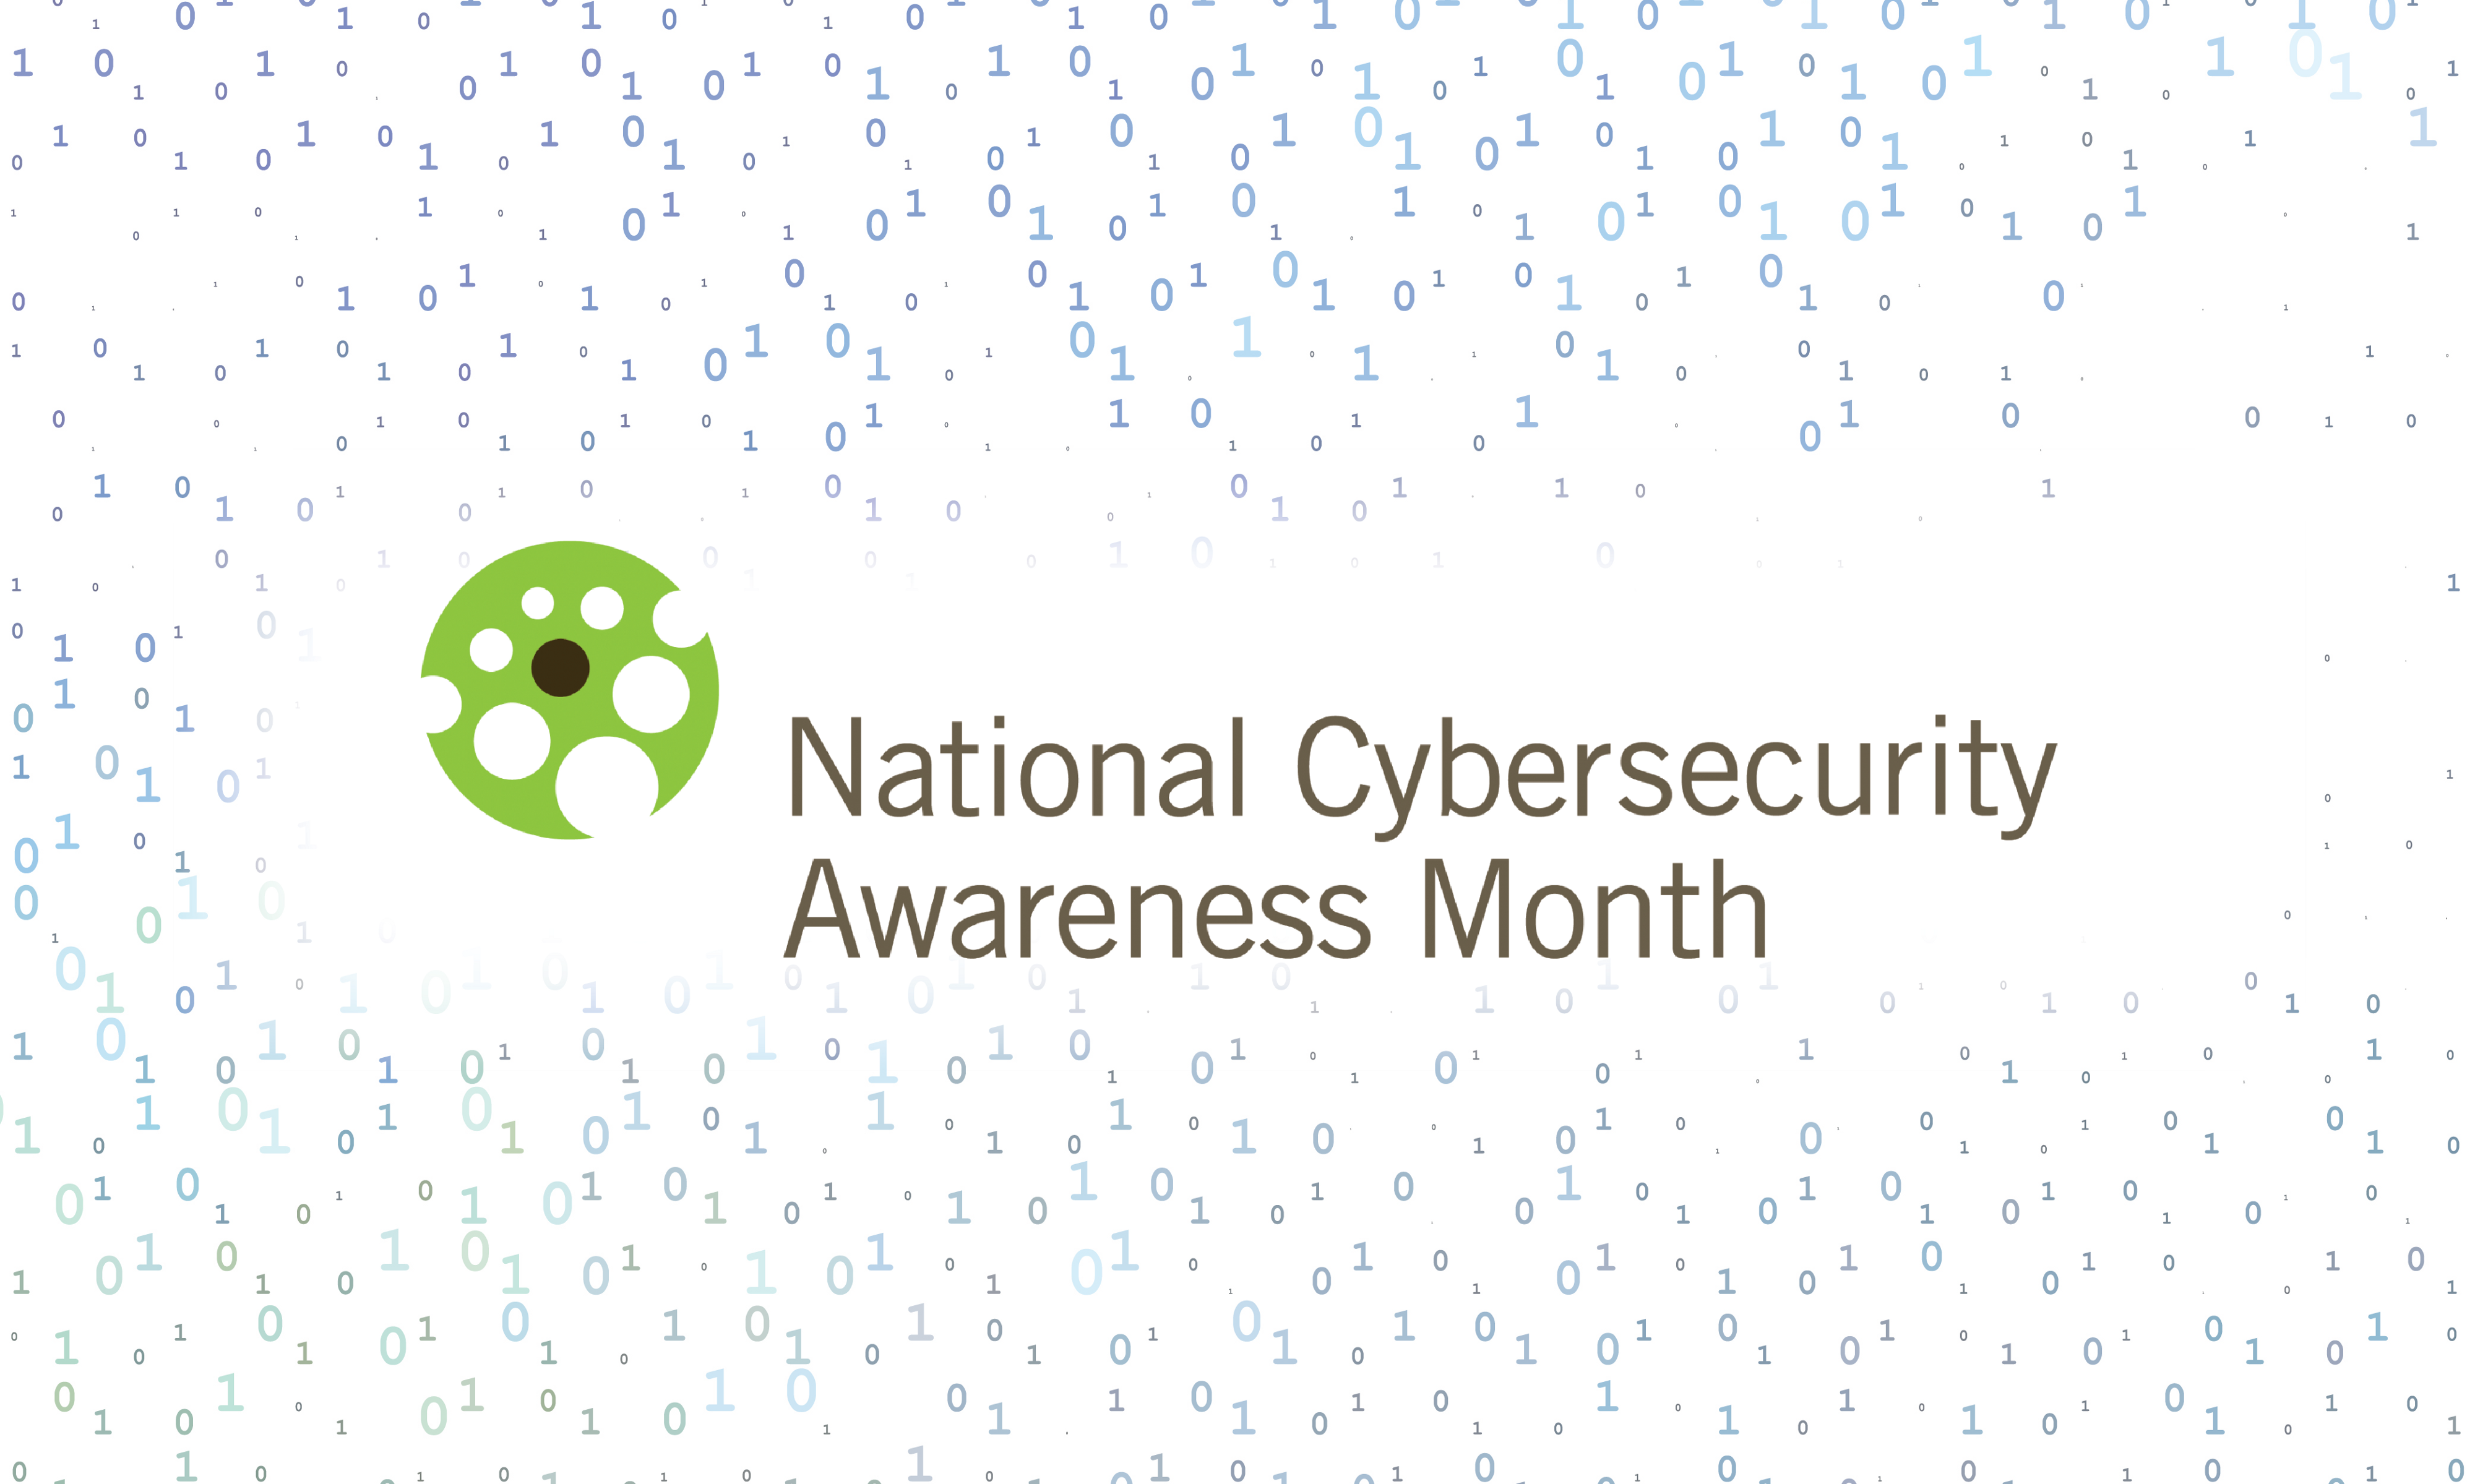 October is National Cybersecurity Awareness Month - Search